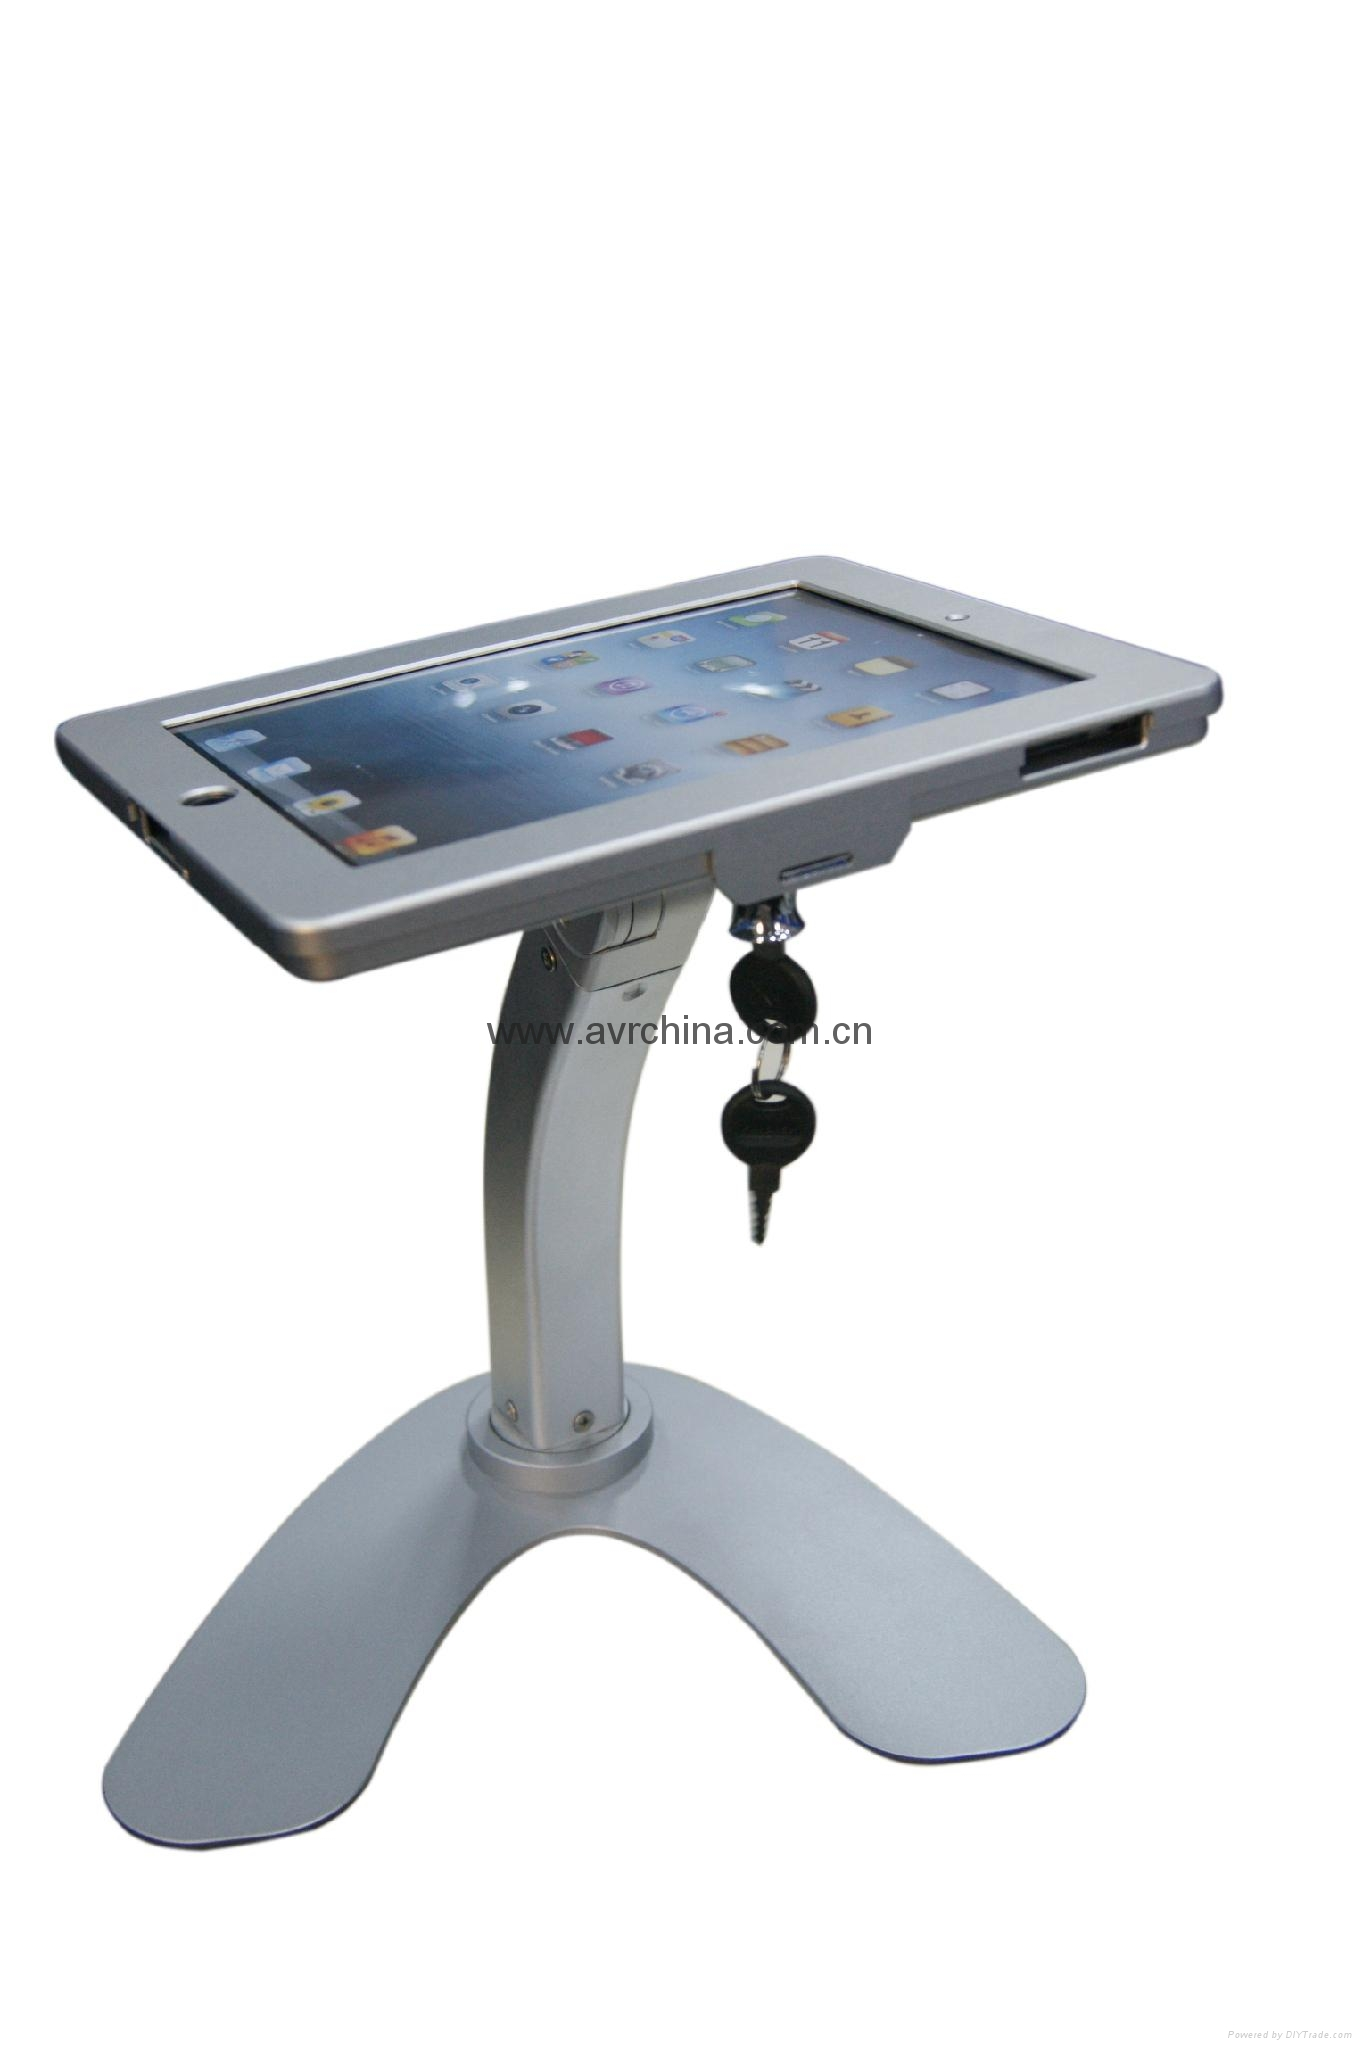 Table tablet for Ipad whatsapp:+65 8498 4312 3